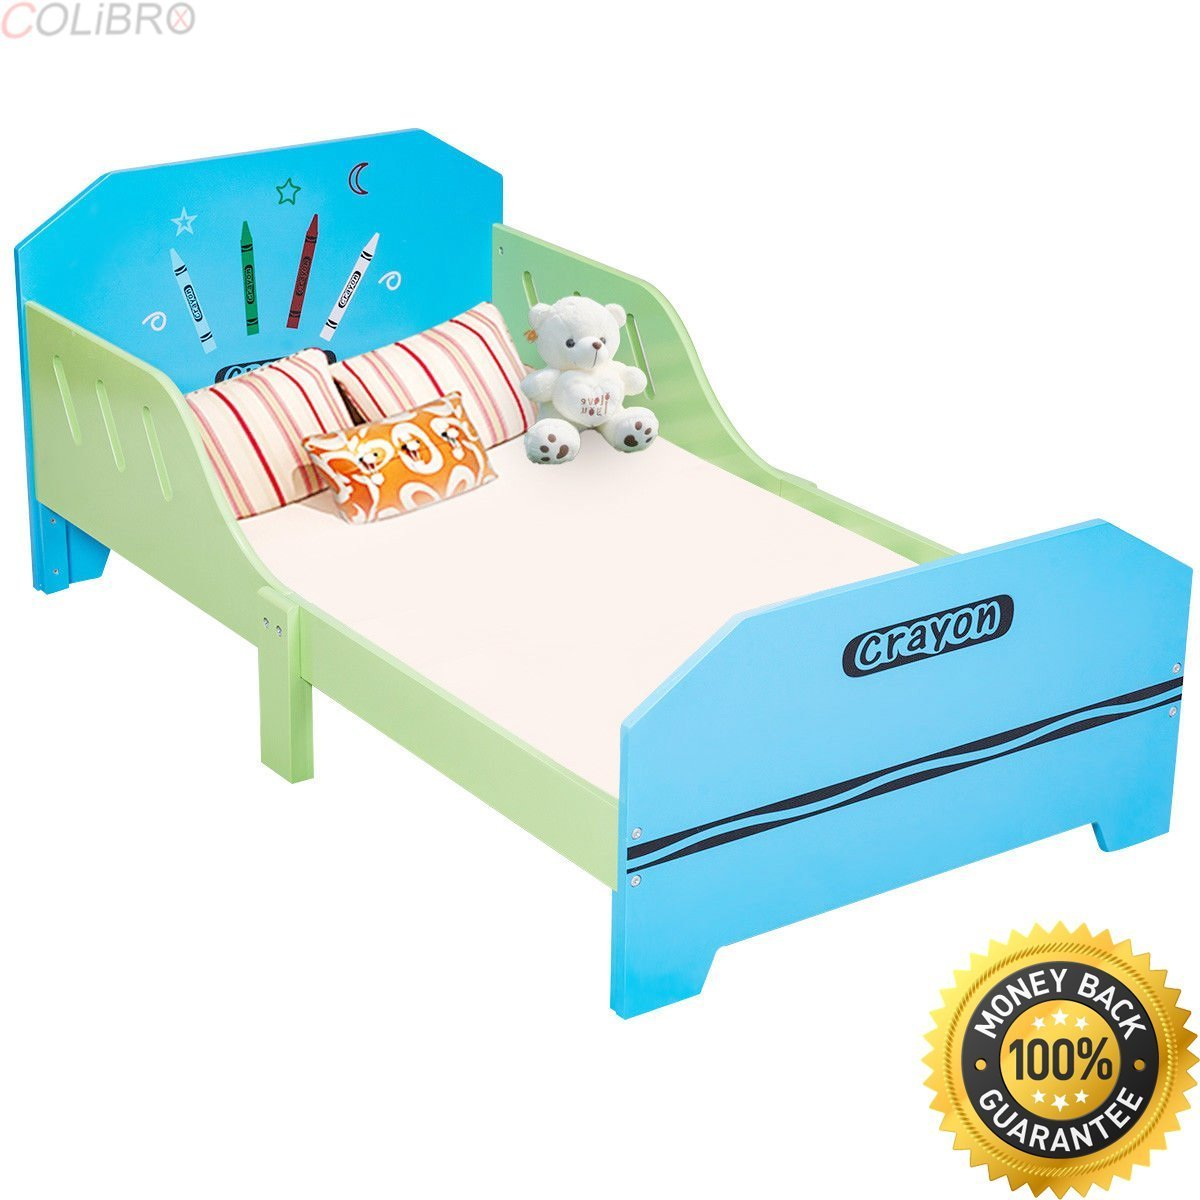 COLIBROX Crayon Themed Wood Kids Bed with Bed Rails for Toddlers and Children Colorful. solid wood children's bedroom furniture. wooden toddler bed with drawer. non toxic twin bed.